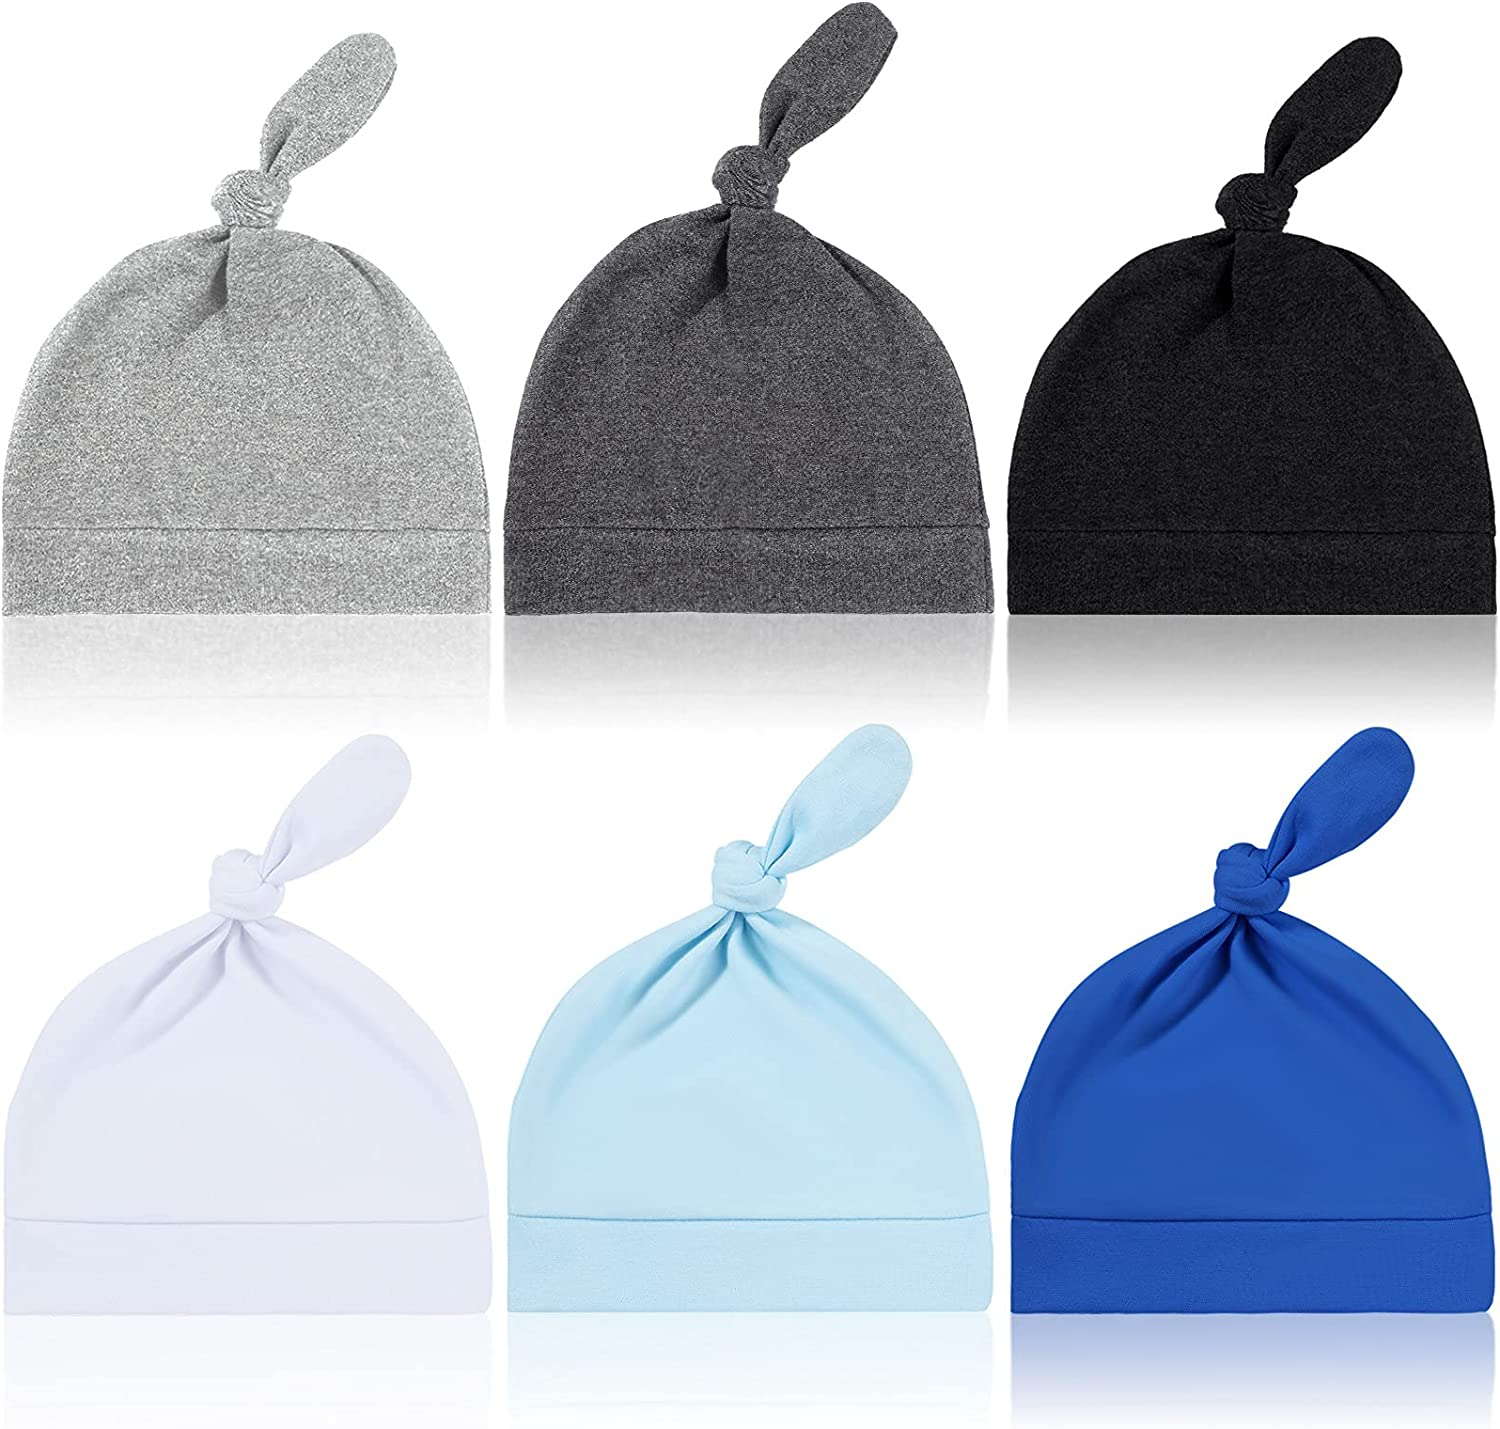 6 Pieces Unisex Baby Beanie Hat Infants Soft Knotted Caps Newborn Baby Hat Top Knotted Baby Beanie for 0-6 Months Baby Boys Girls